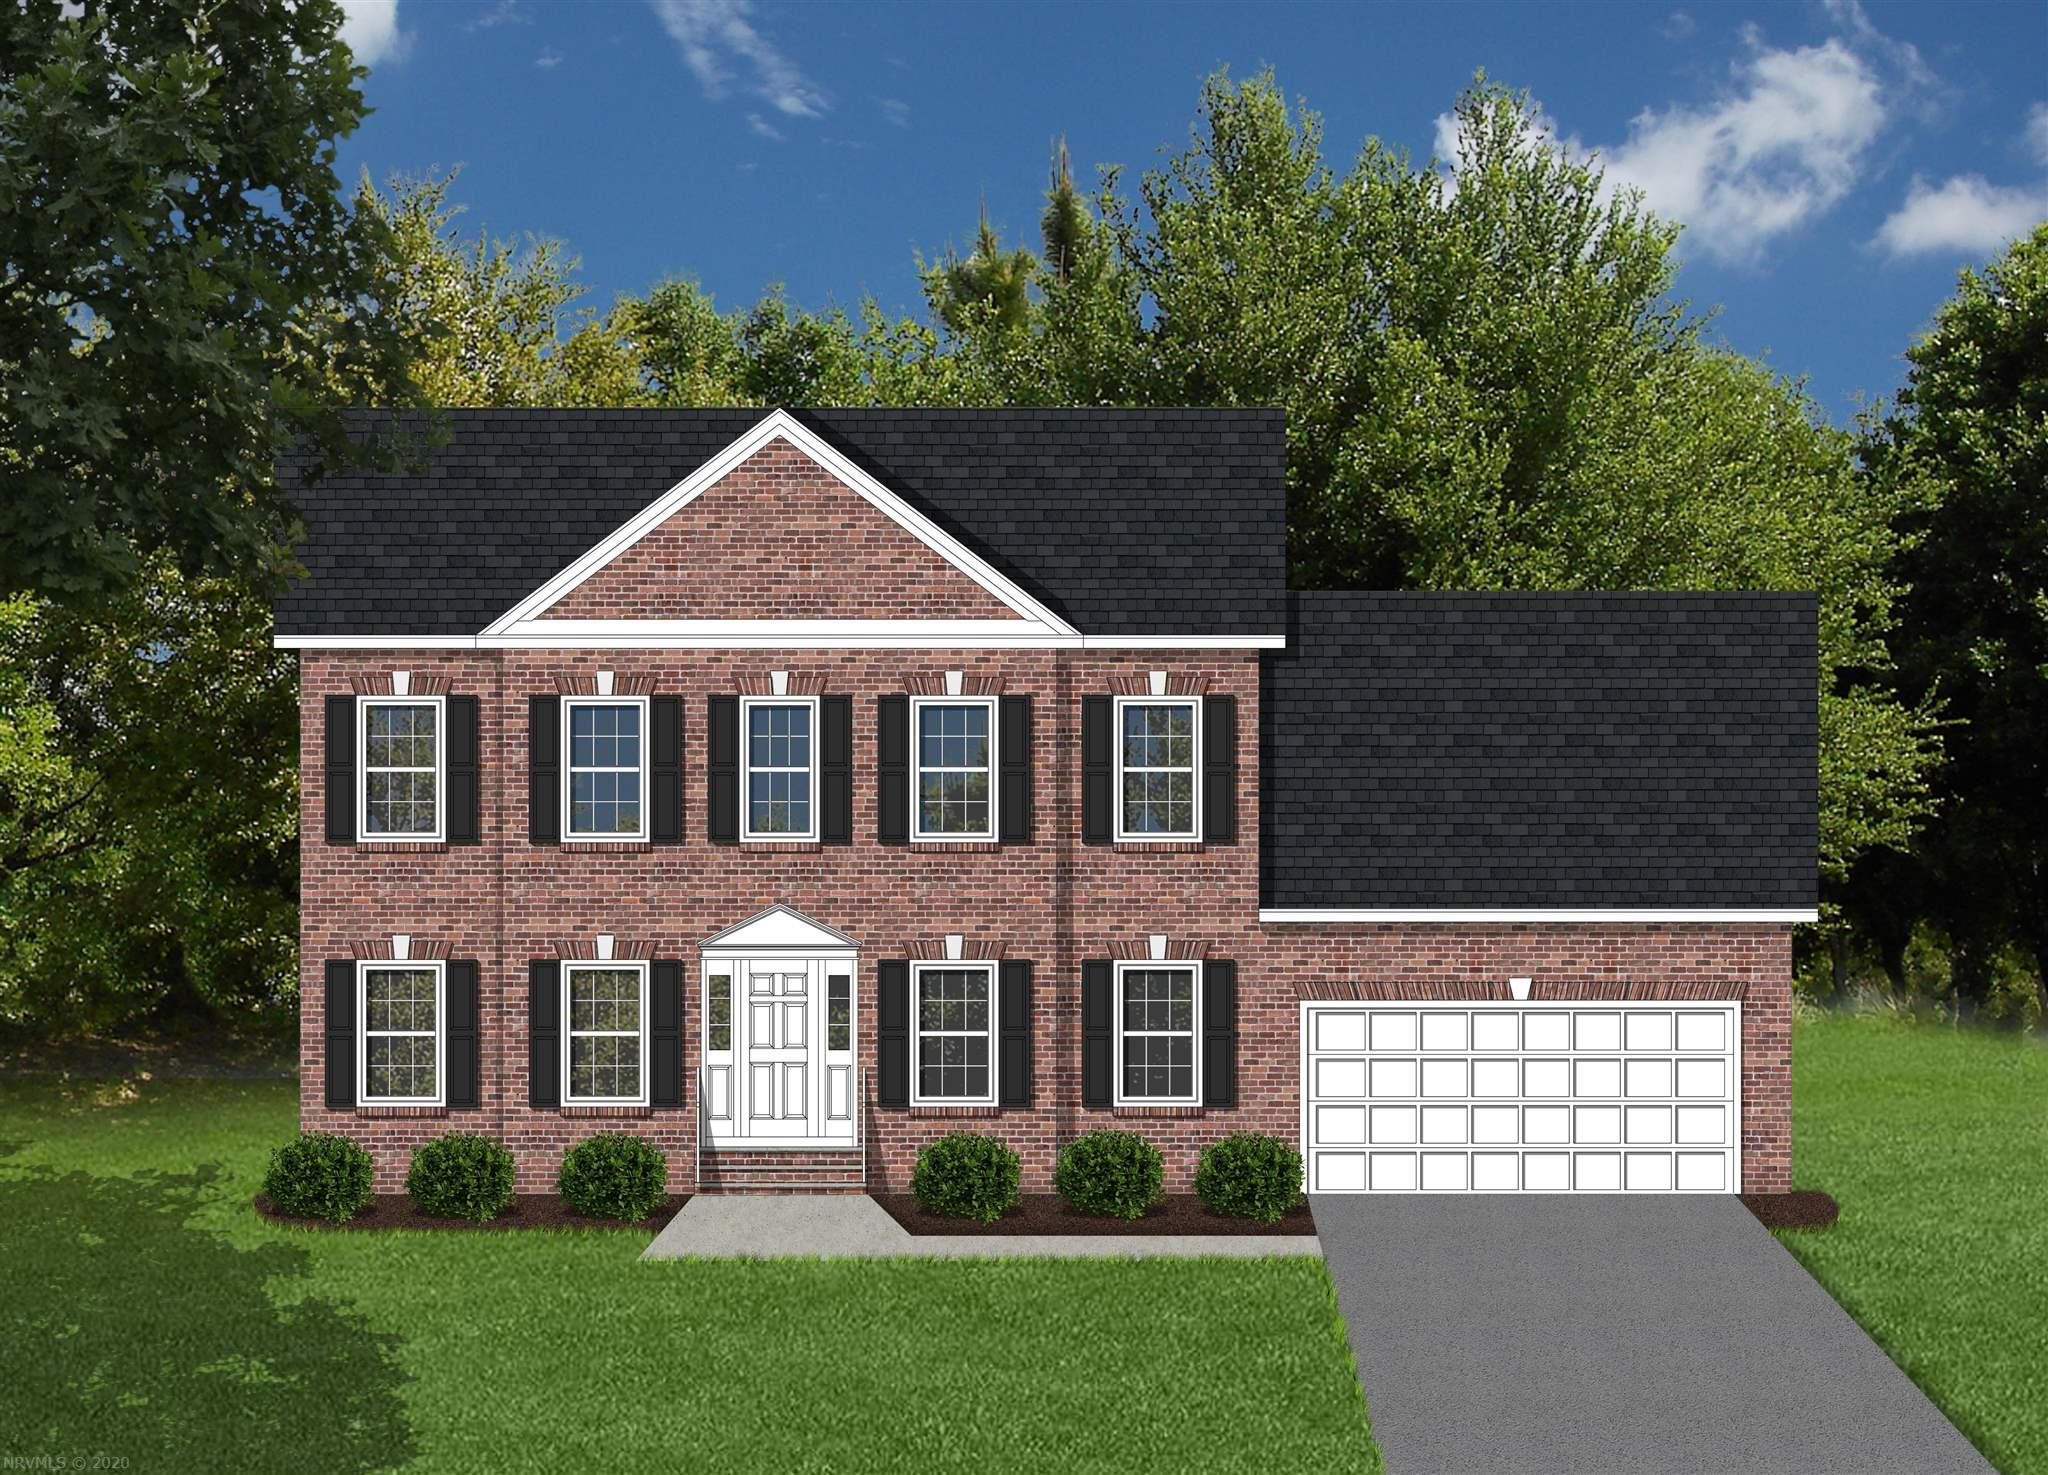 This is a pre-construction listing that is not yet built. info. below and pictures attached for our Brentwood style, with the Master bedroom on its Main level, home which offers 2,565 square feet above grade, and 9' framed walls on first floor with smooth drywall finish. This house plan incorporates hardwoods on the entire main living level, ceramic tile in the baths and laundry, oak treads, and carpet throughout remaining areas. Tahoe cabinets by Timberlake in the kitchen and Fairfield in the bathrooms make the home even more beautiful. The kitchen counter tops are luxurious granite and the bathrooms are cultured marble. Crown molding can be found in the dining room and master bedroom, as well as chair rail with wainscoting in the dining room. Kensington is conveniently in Christiansburg off Mud Pike Road and adjacent to Christiansburg Middle School. Owner/Agent.